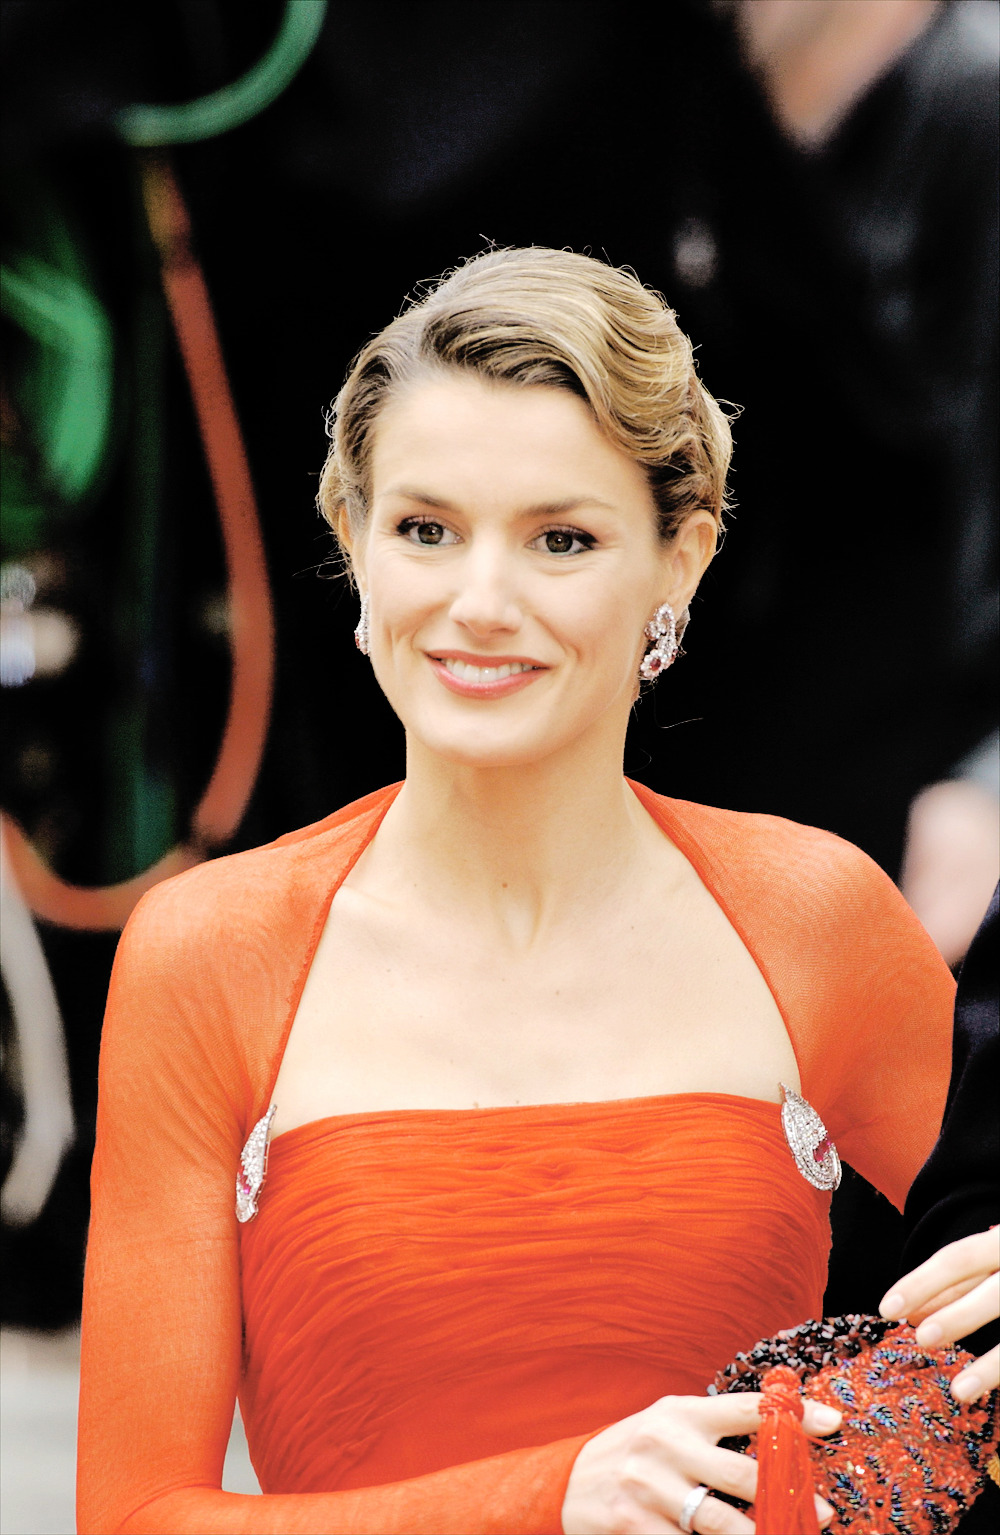 misshonoriaglossop: